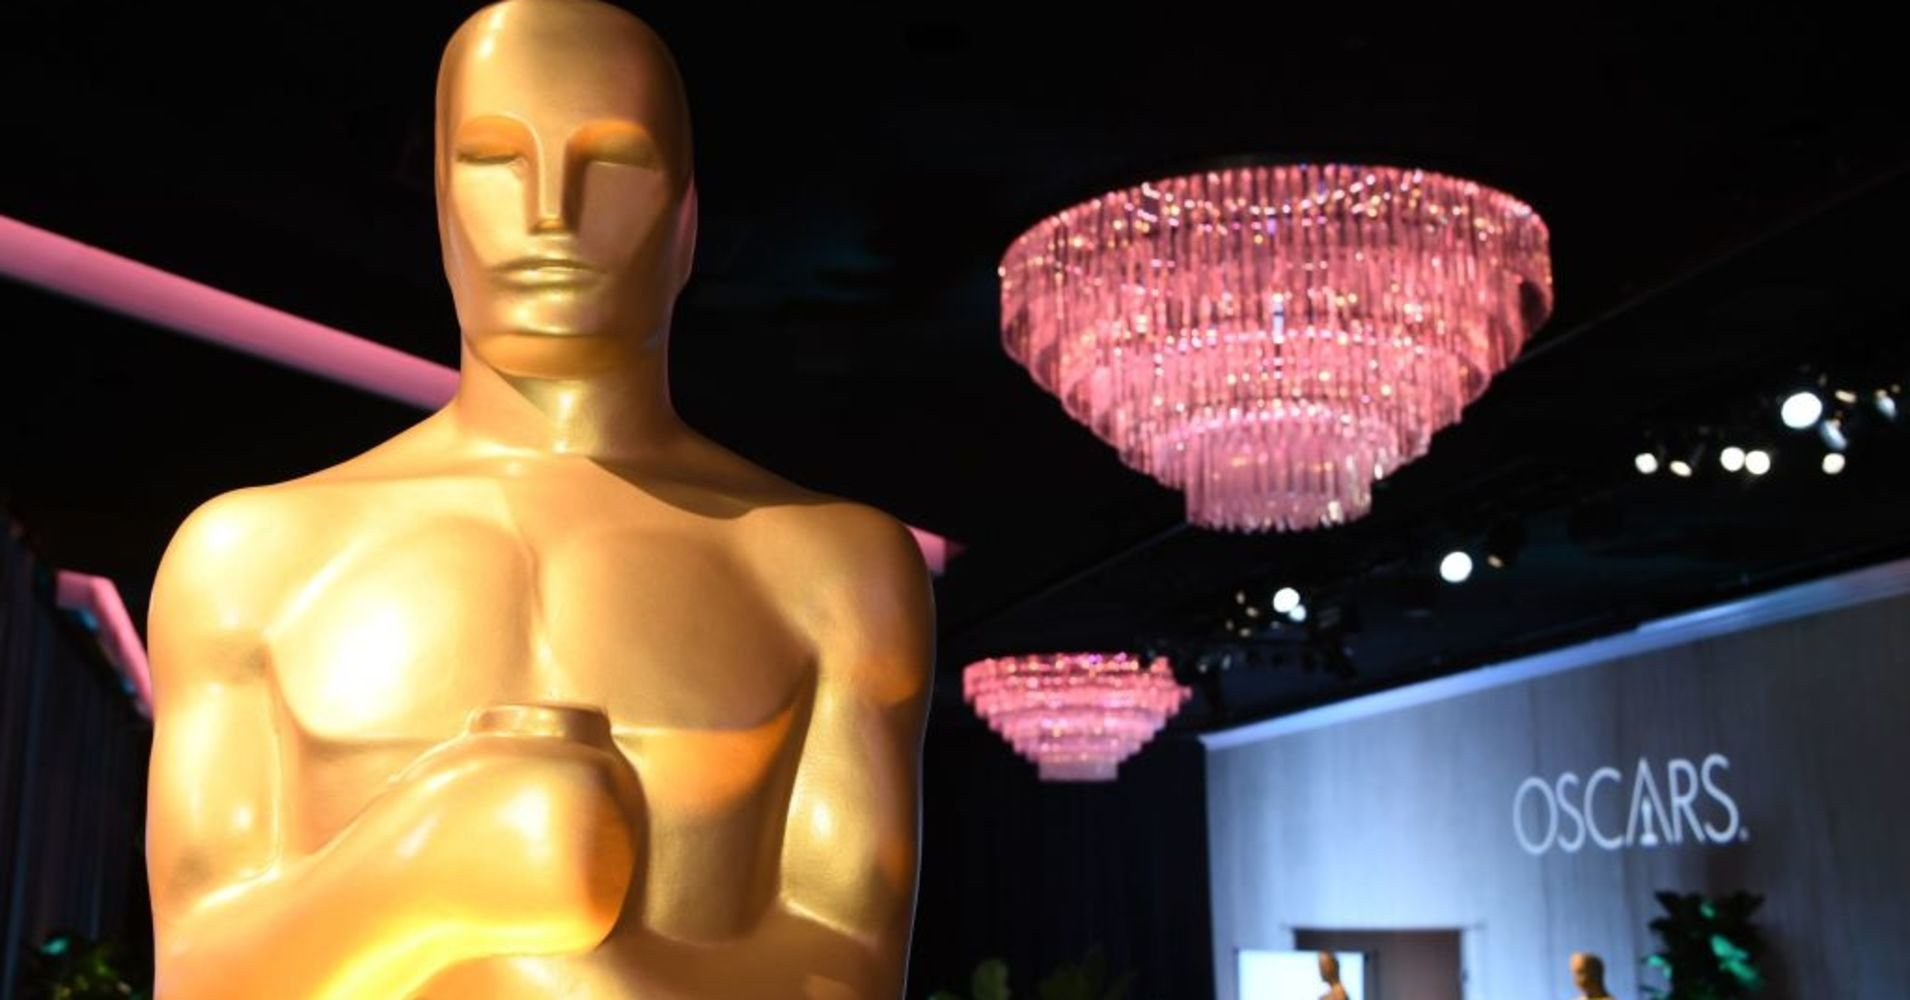 This year's Oscars swag bags include cannabis chocolates